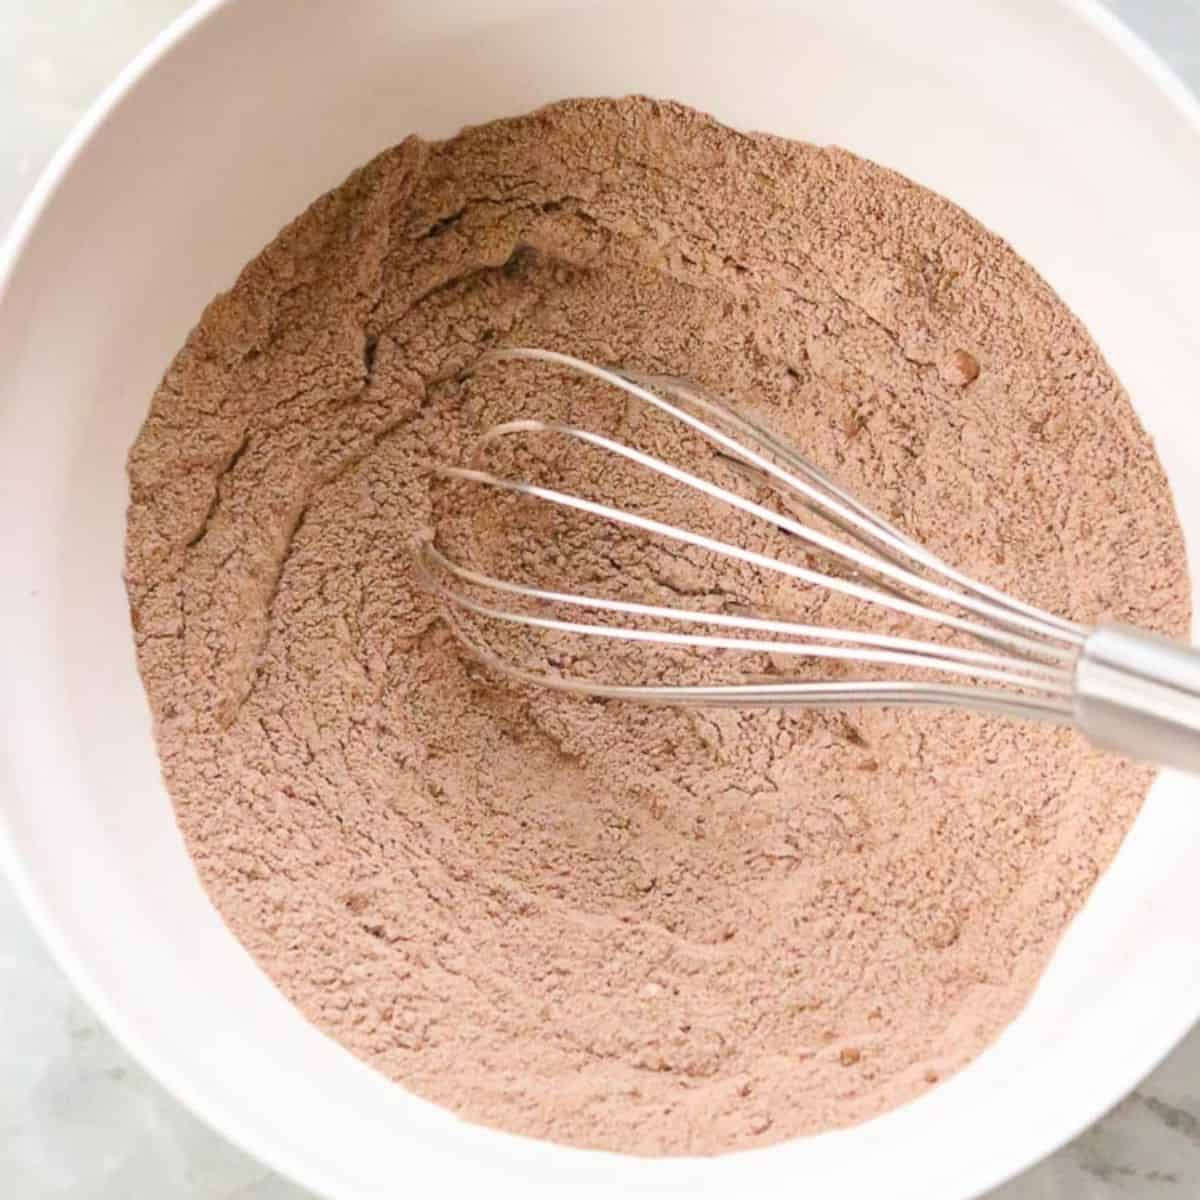 Dry ingredients for brownies in a bowl.